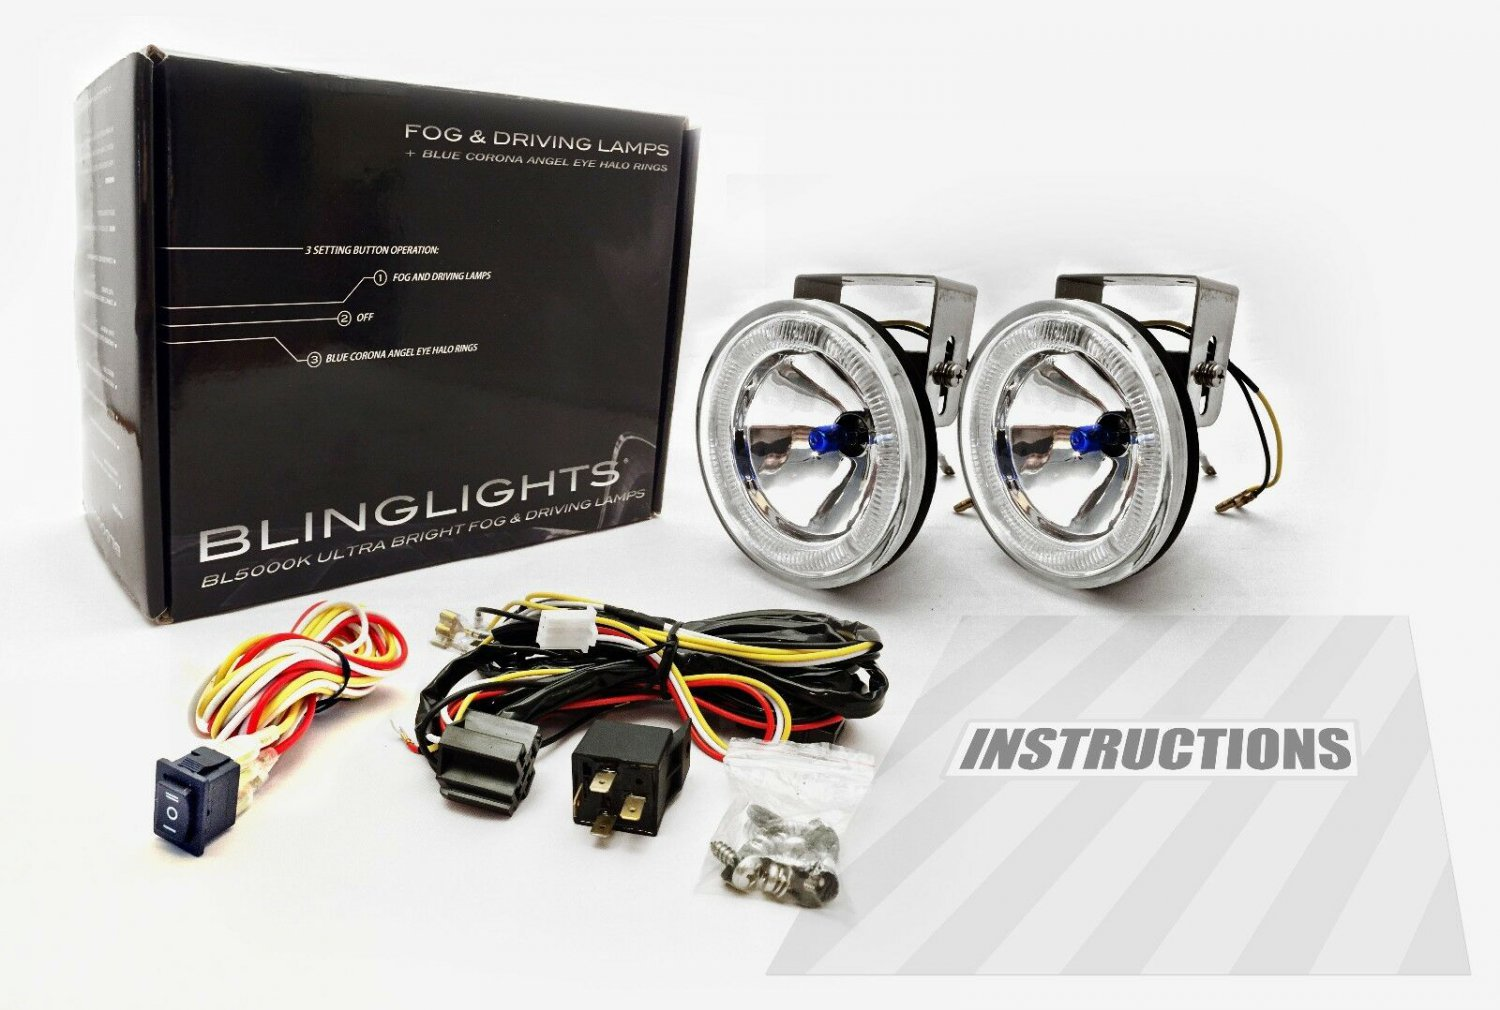 Blue Halo Fog Lamp Angel Eye Driving Light Kit for 2006-2009 Toyota 4Runner